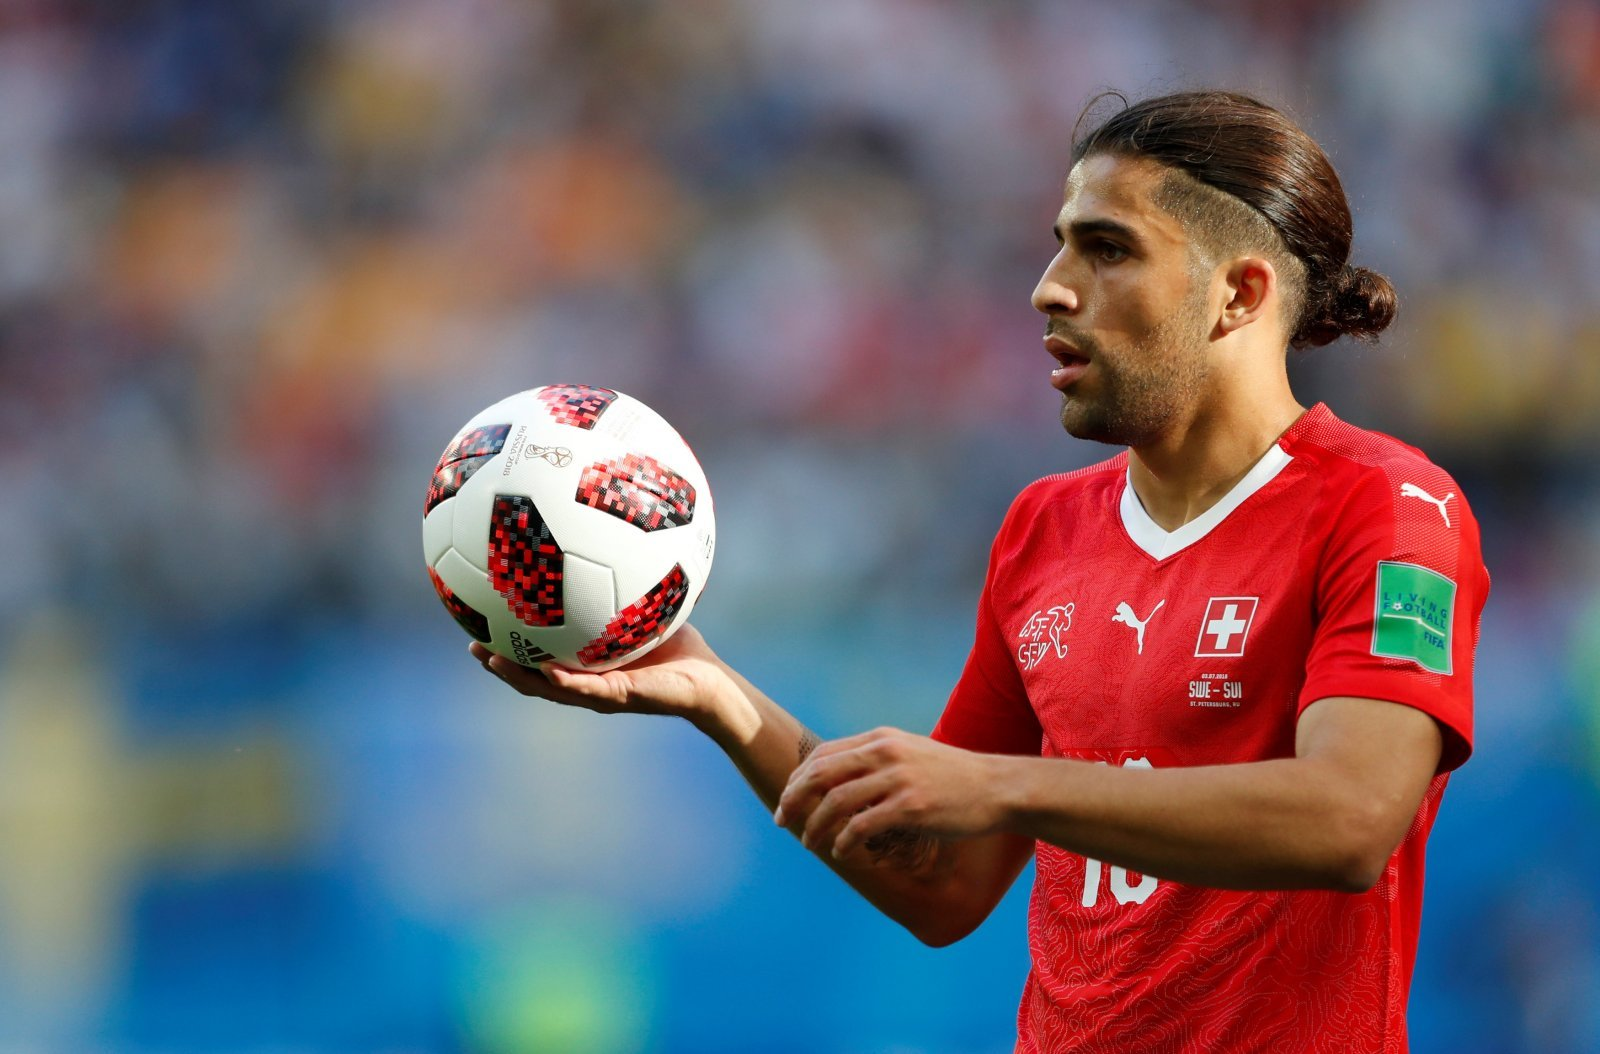 Ricardo Rodriguez would be a very good summer signing for Man City